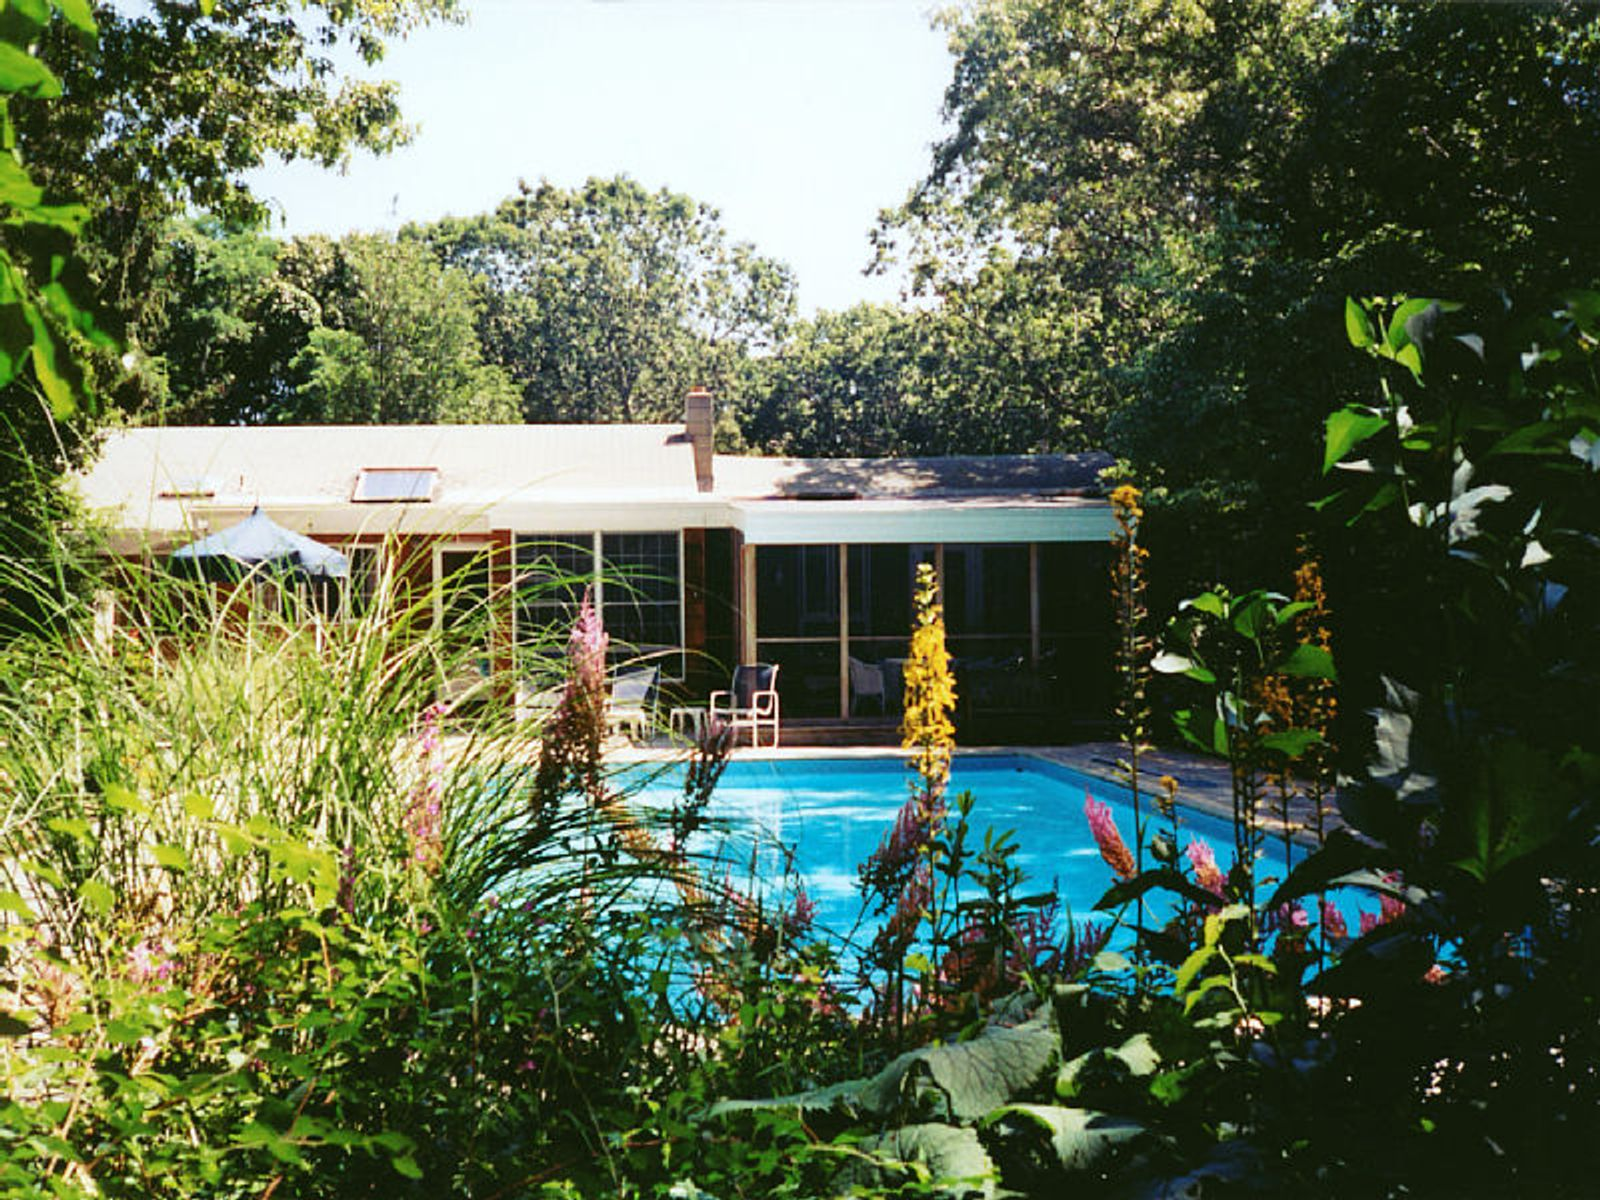 Sag Harbor Summer Retreat, Sag Harbor NY Single Family Home - Hamptons Real Estate